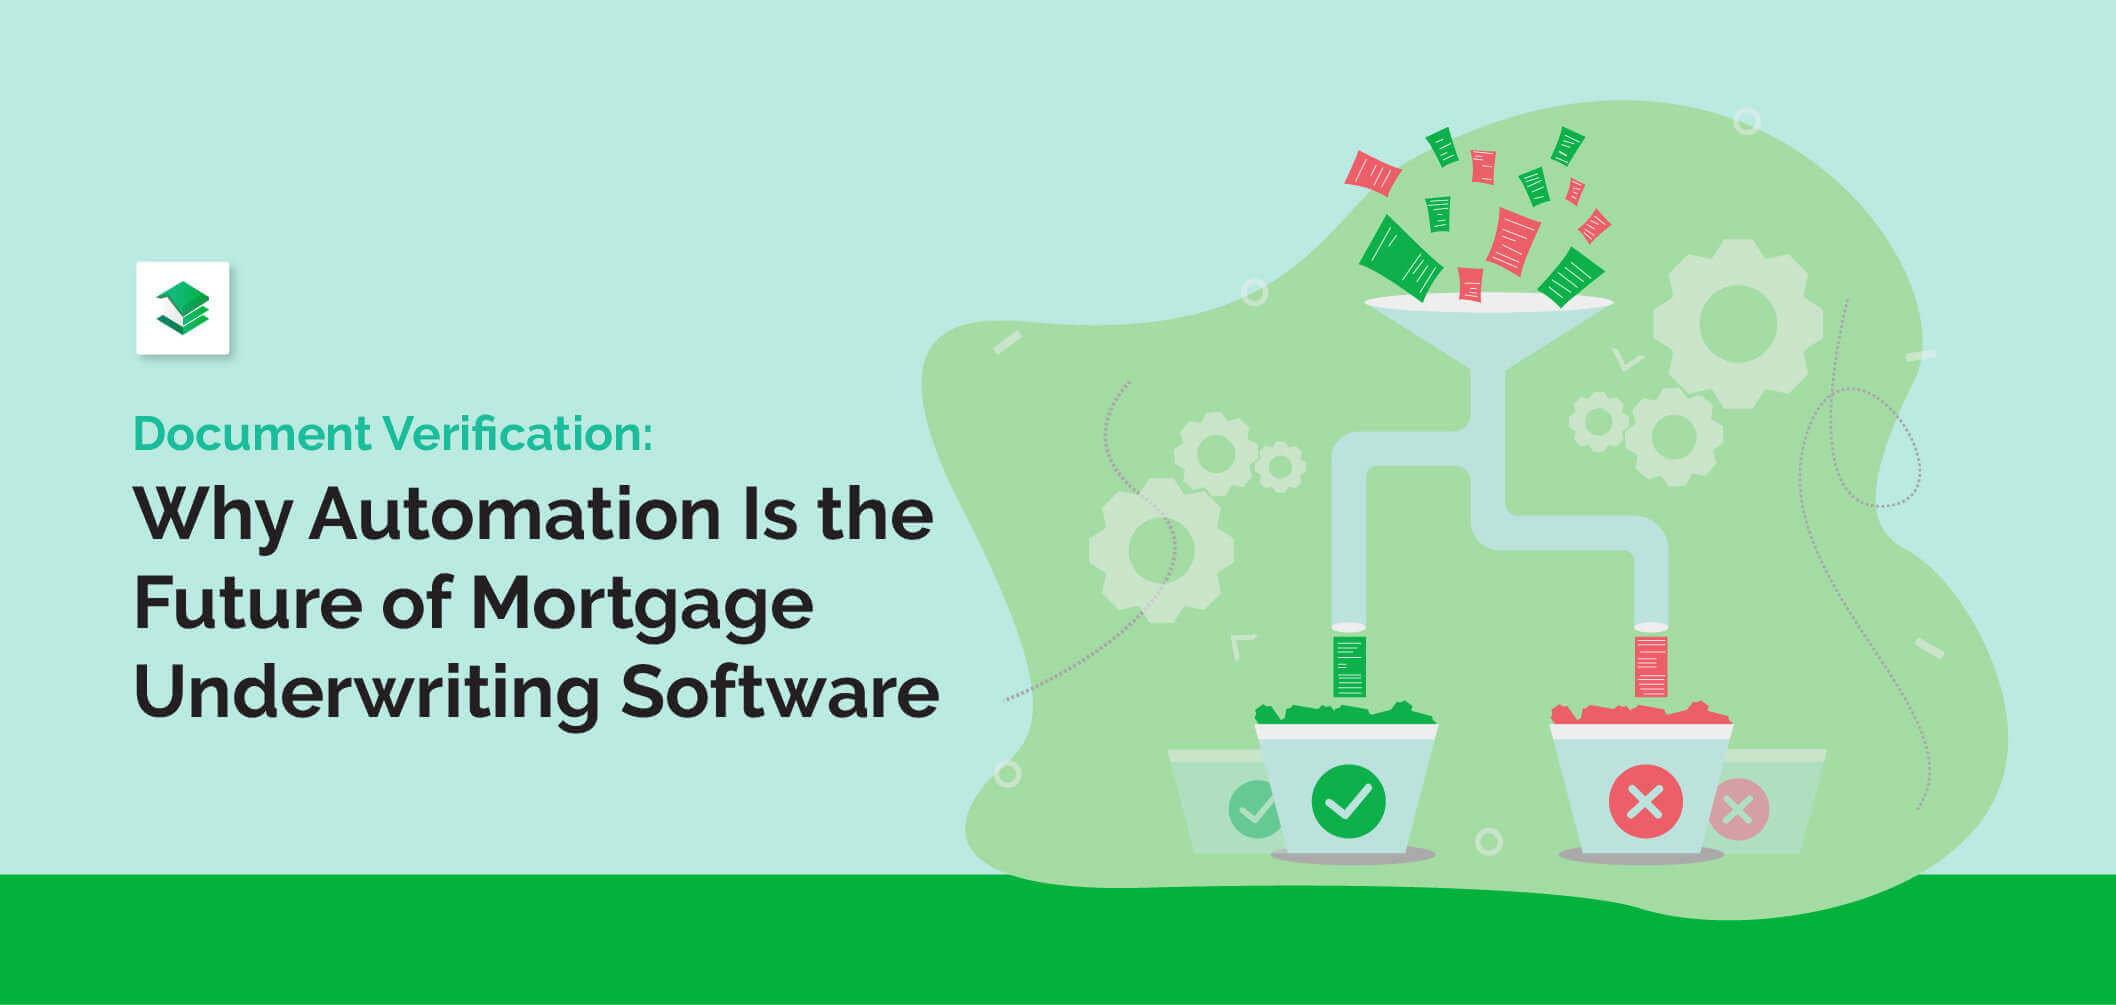 why-automation-is-the-future-of-mortgage-underwriting-software